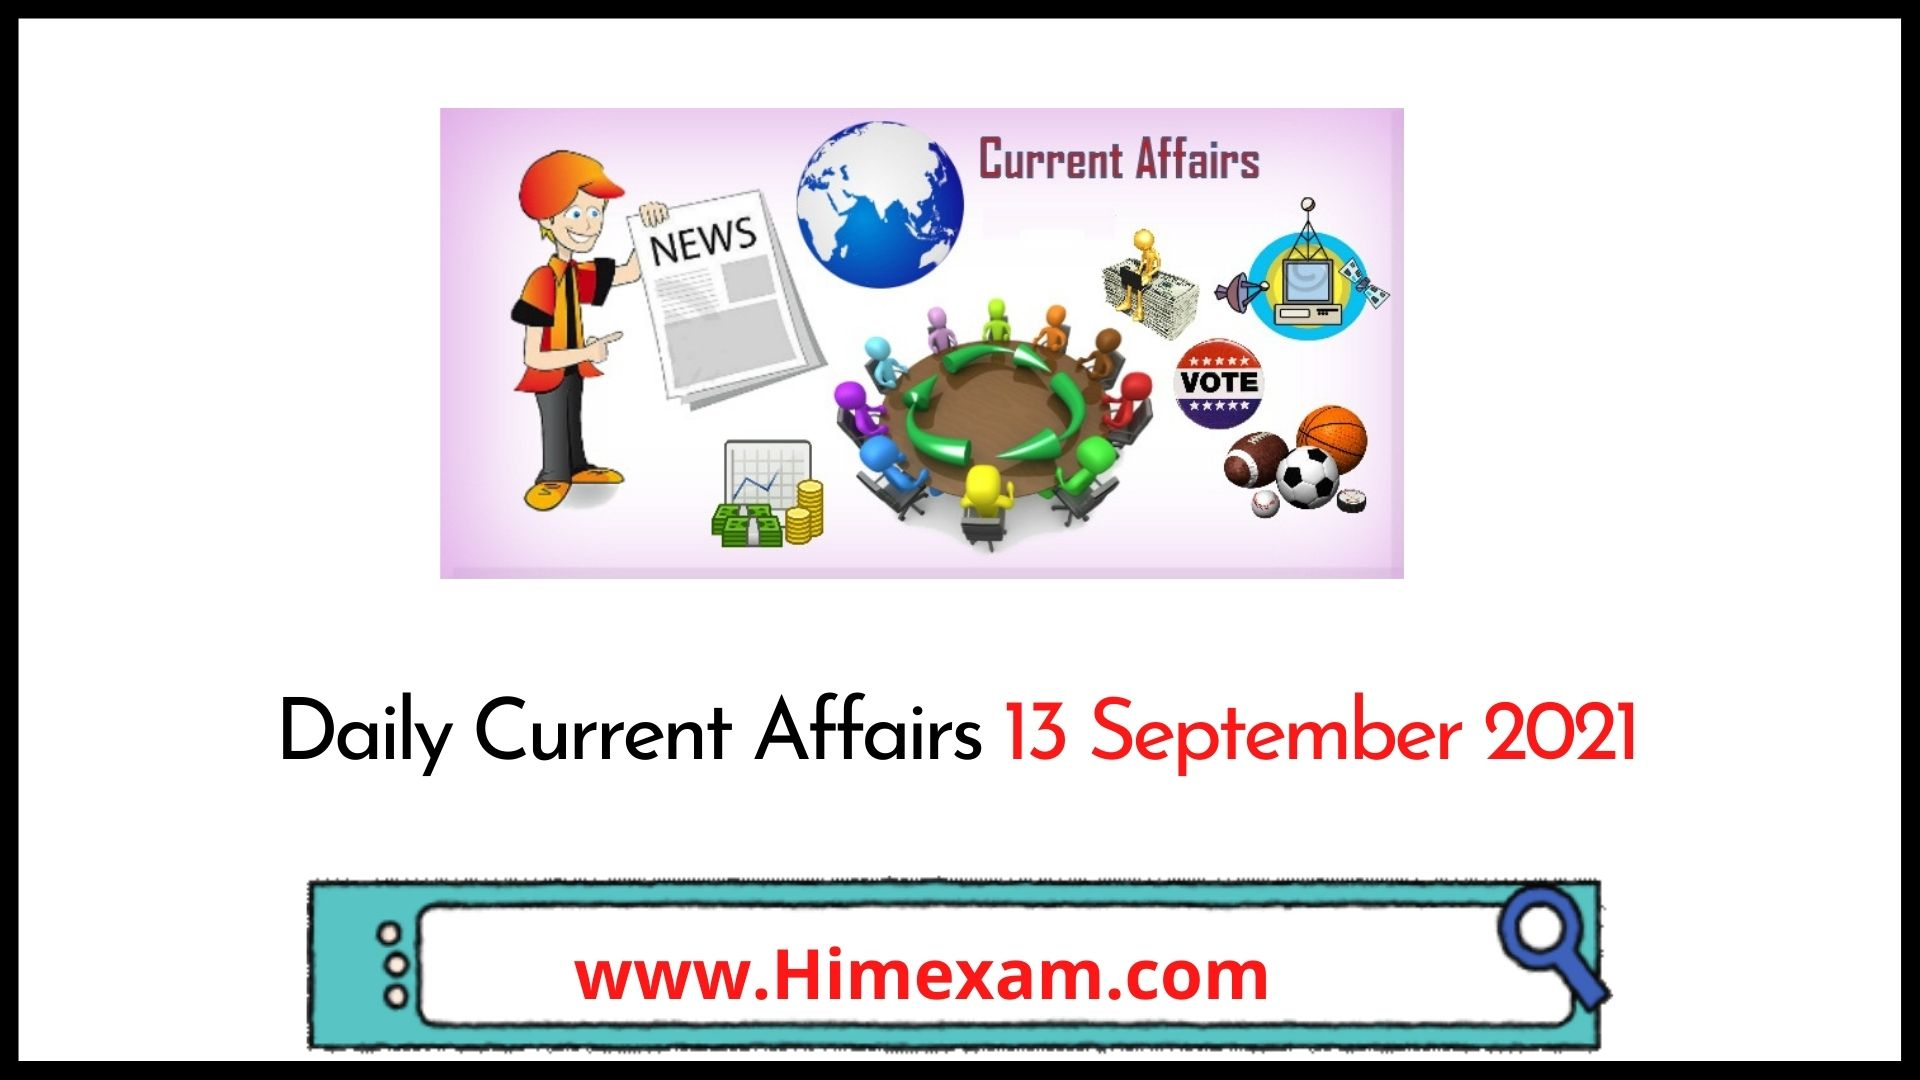 Daily Current Affairs 13 September 2021